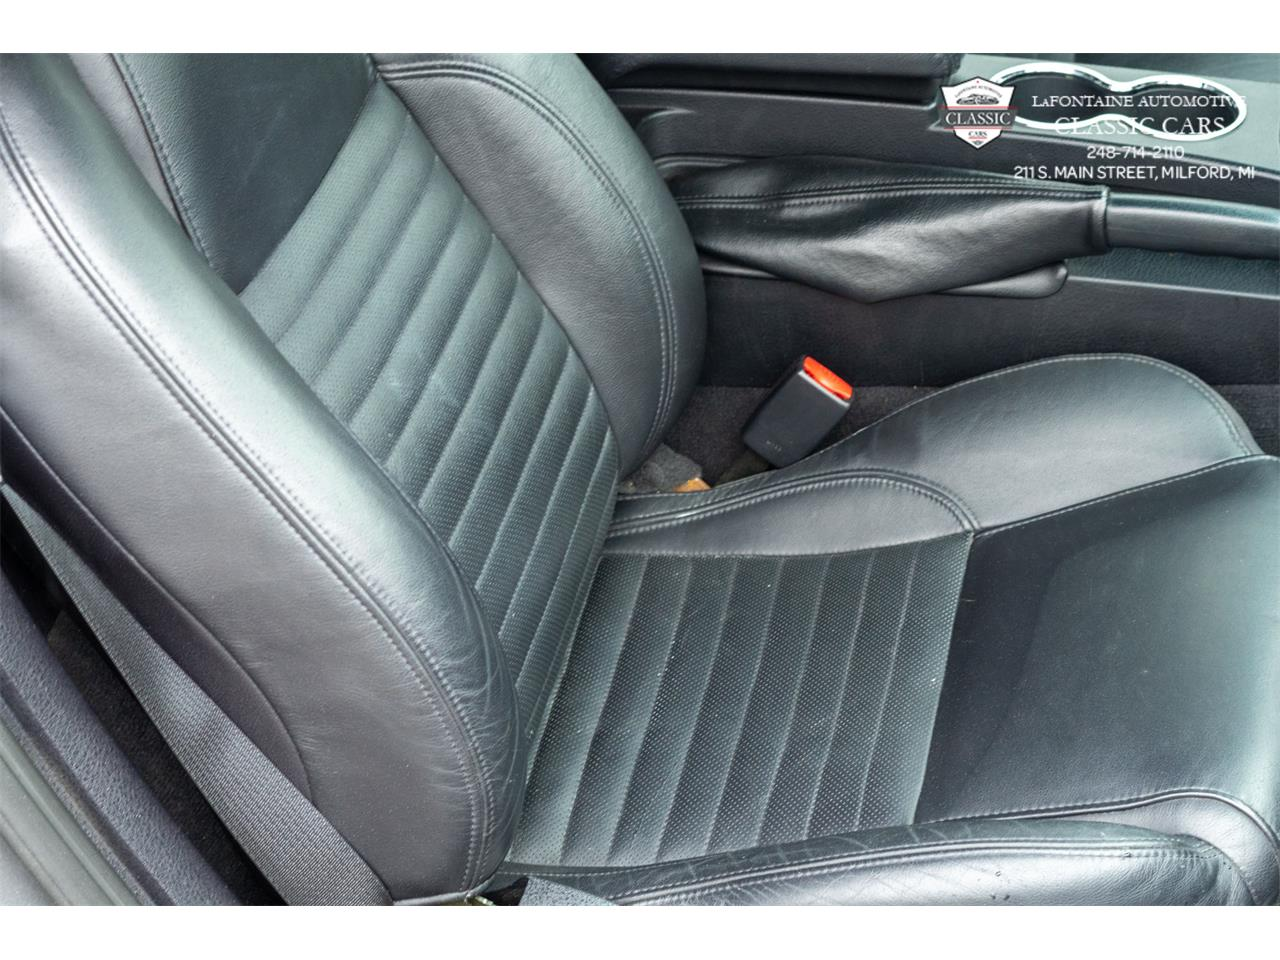 2003 Ford Thunderbird (CC-1418996) for sale in Milford, Michigan